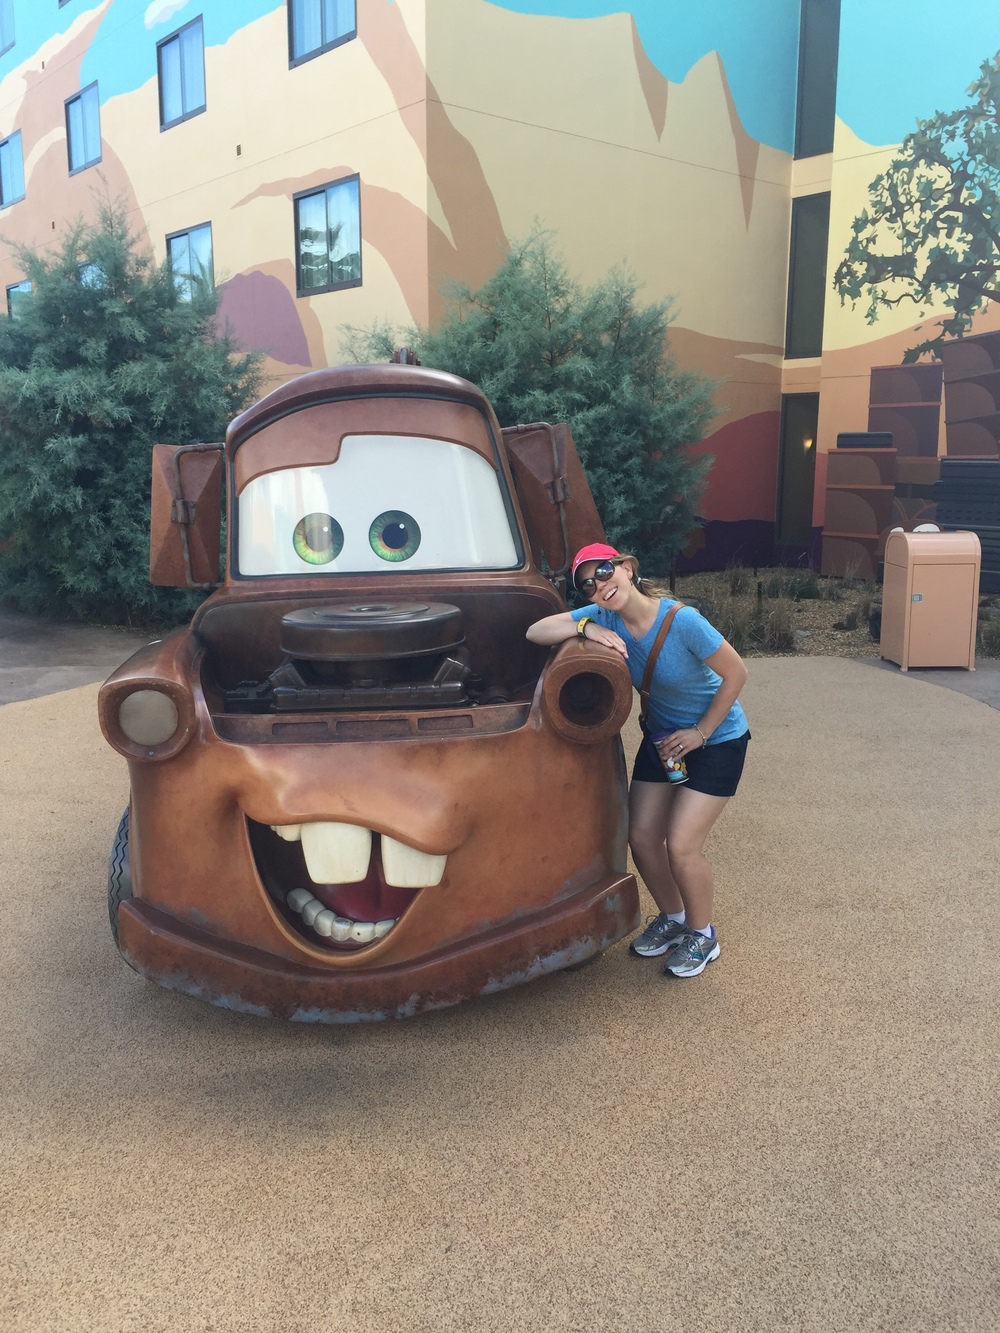 Lookin' good, Tow Mater